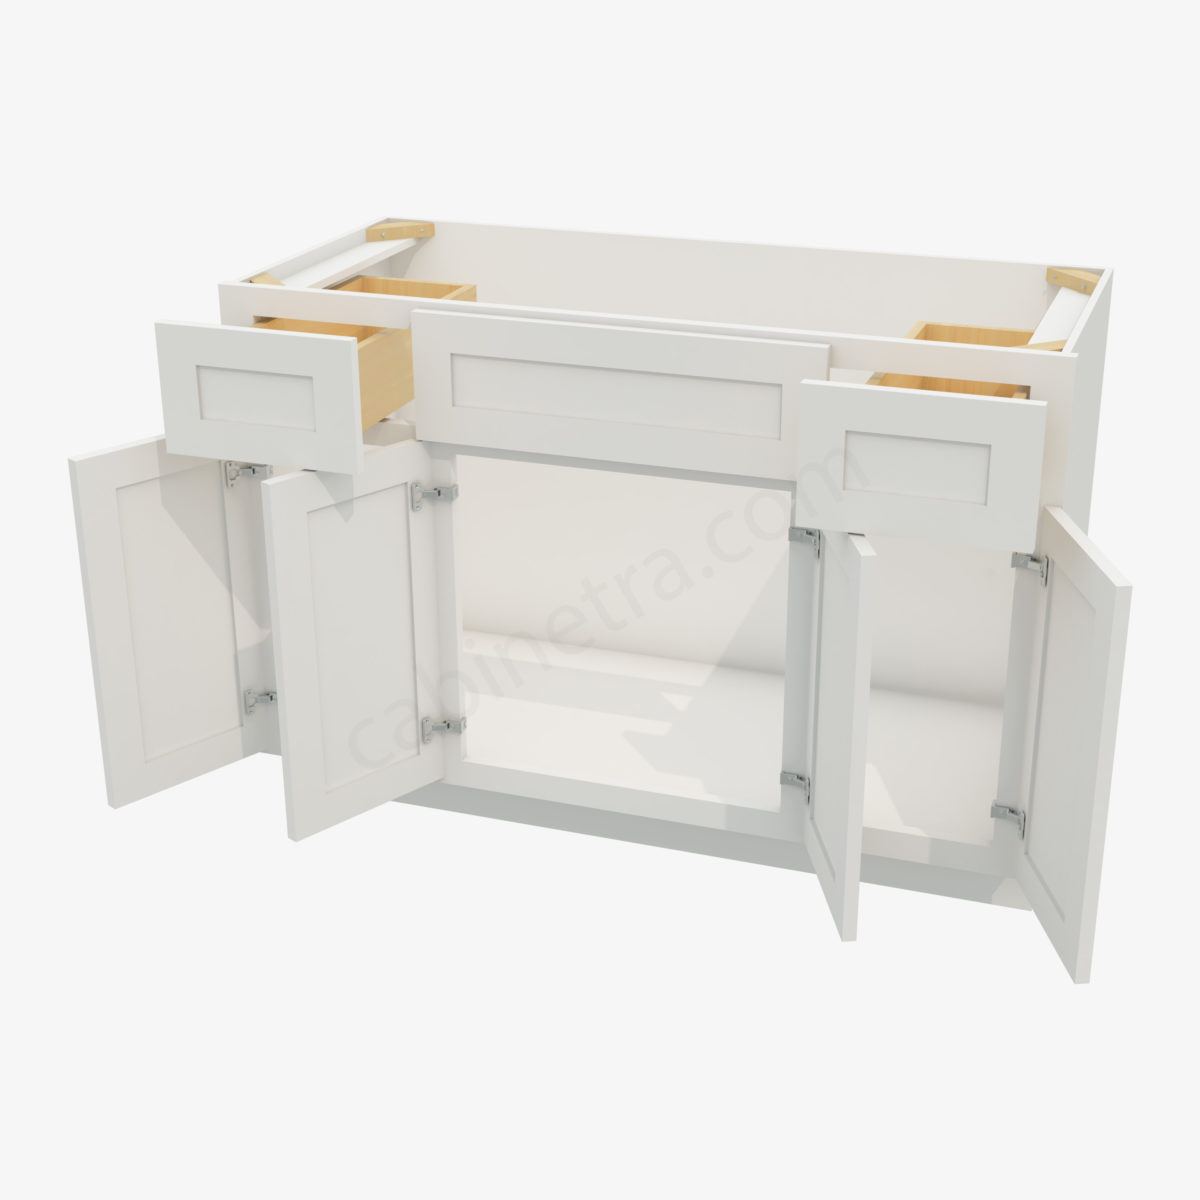 AW S4821B12D 34 5 Forevermark Ice White Shaker Cabinetra scaled